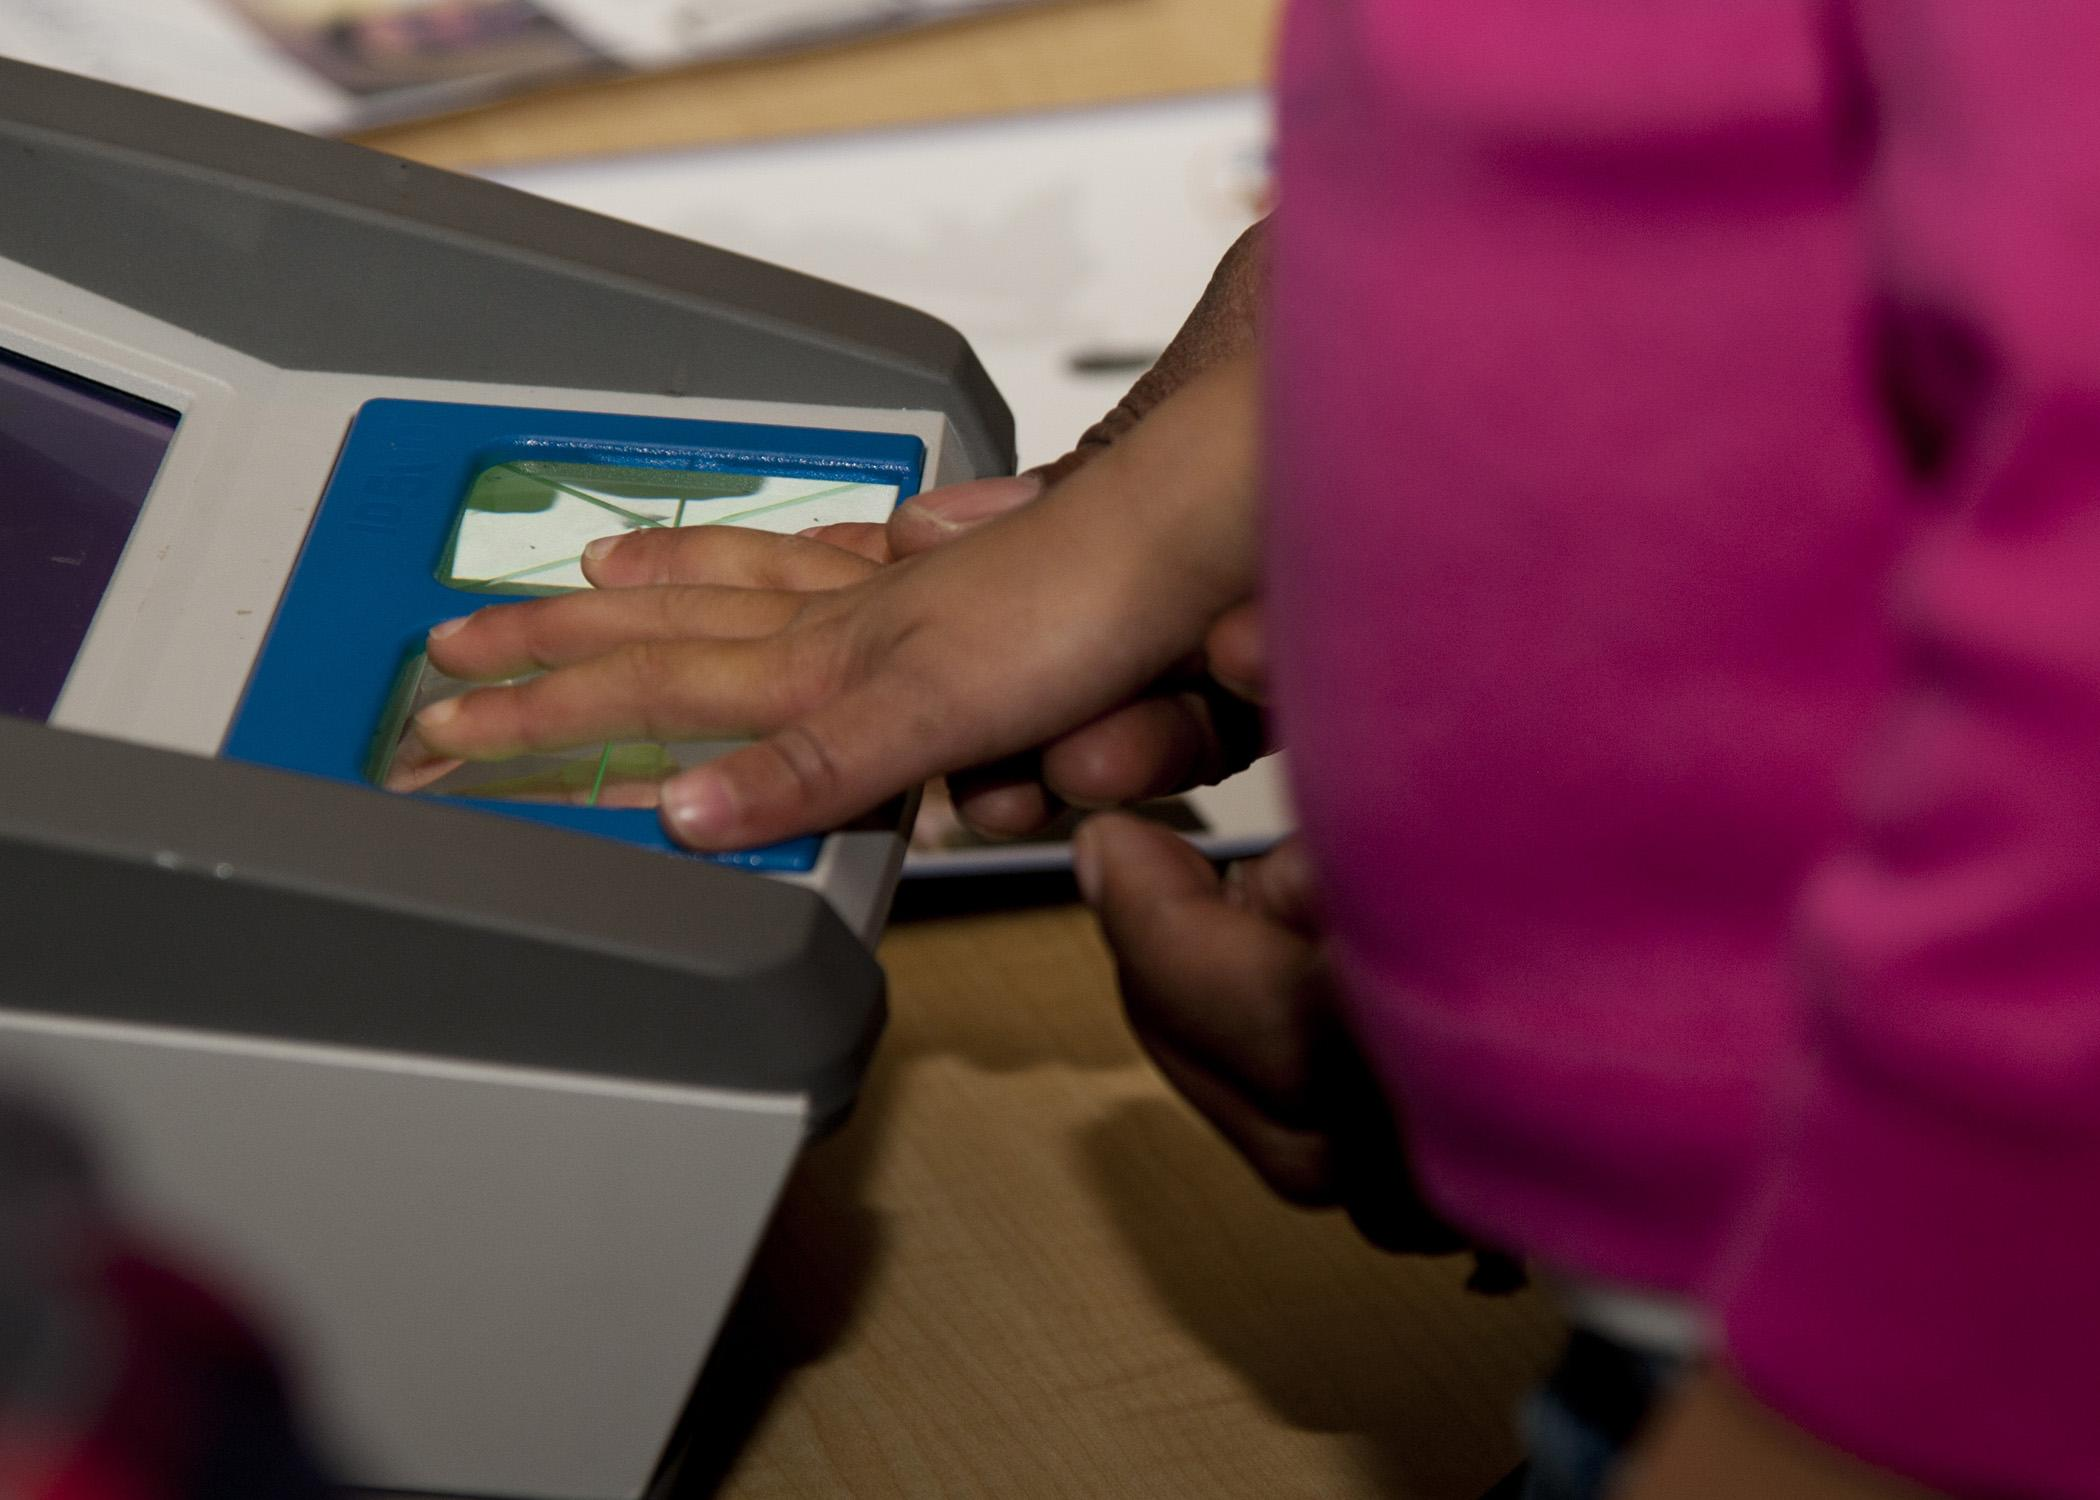 An individual's hand is held to a scanning machine for fingerprinting.